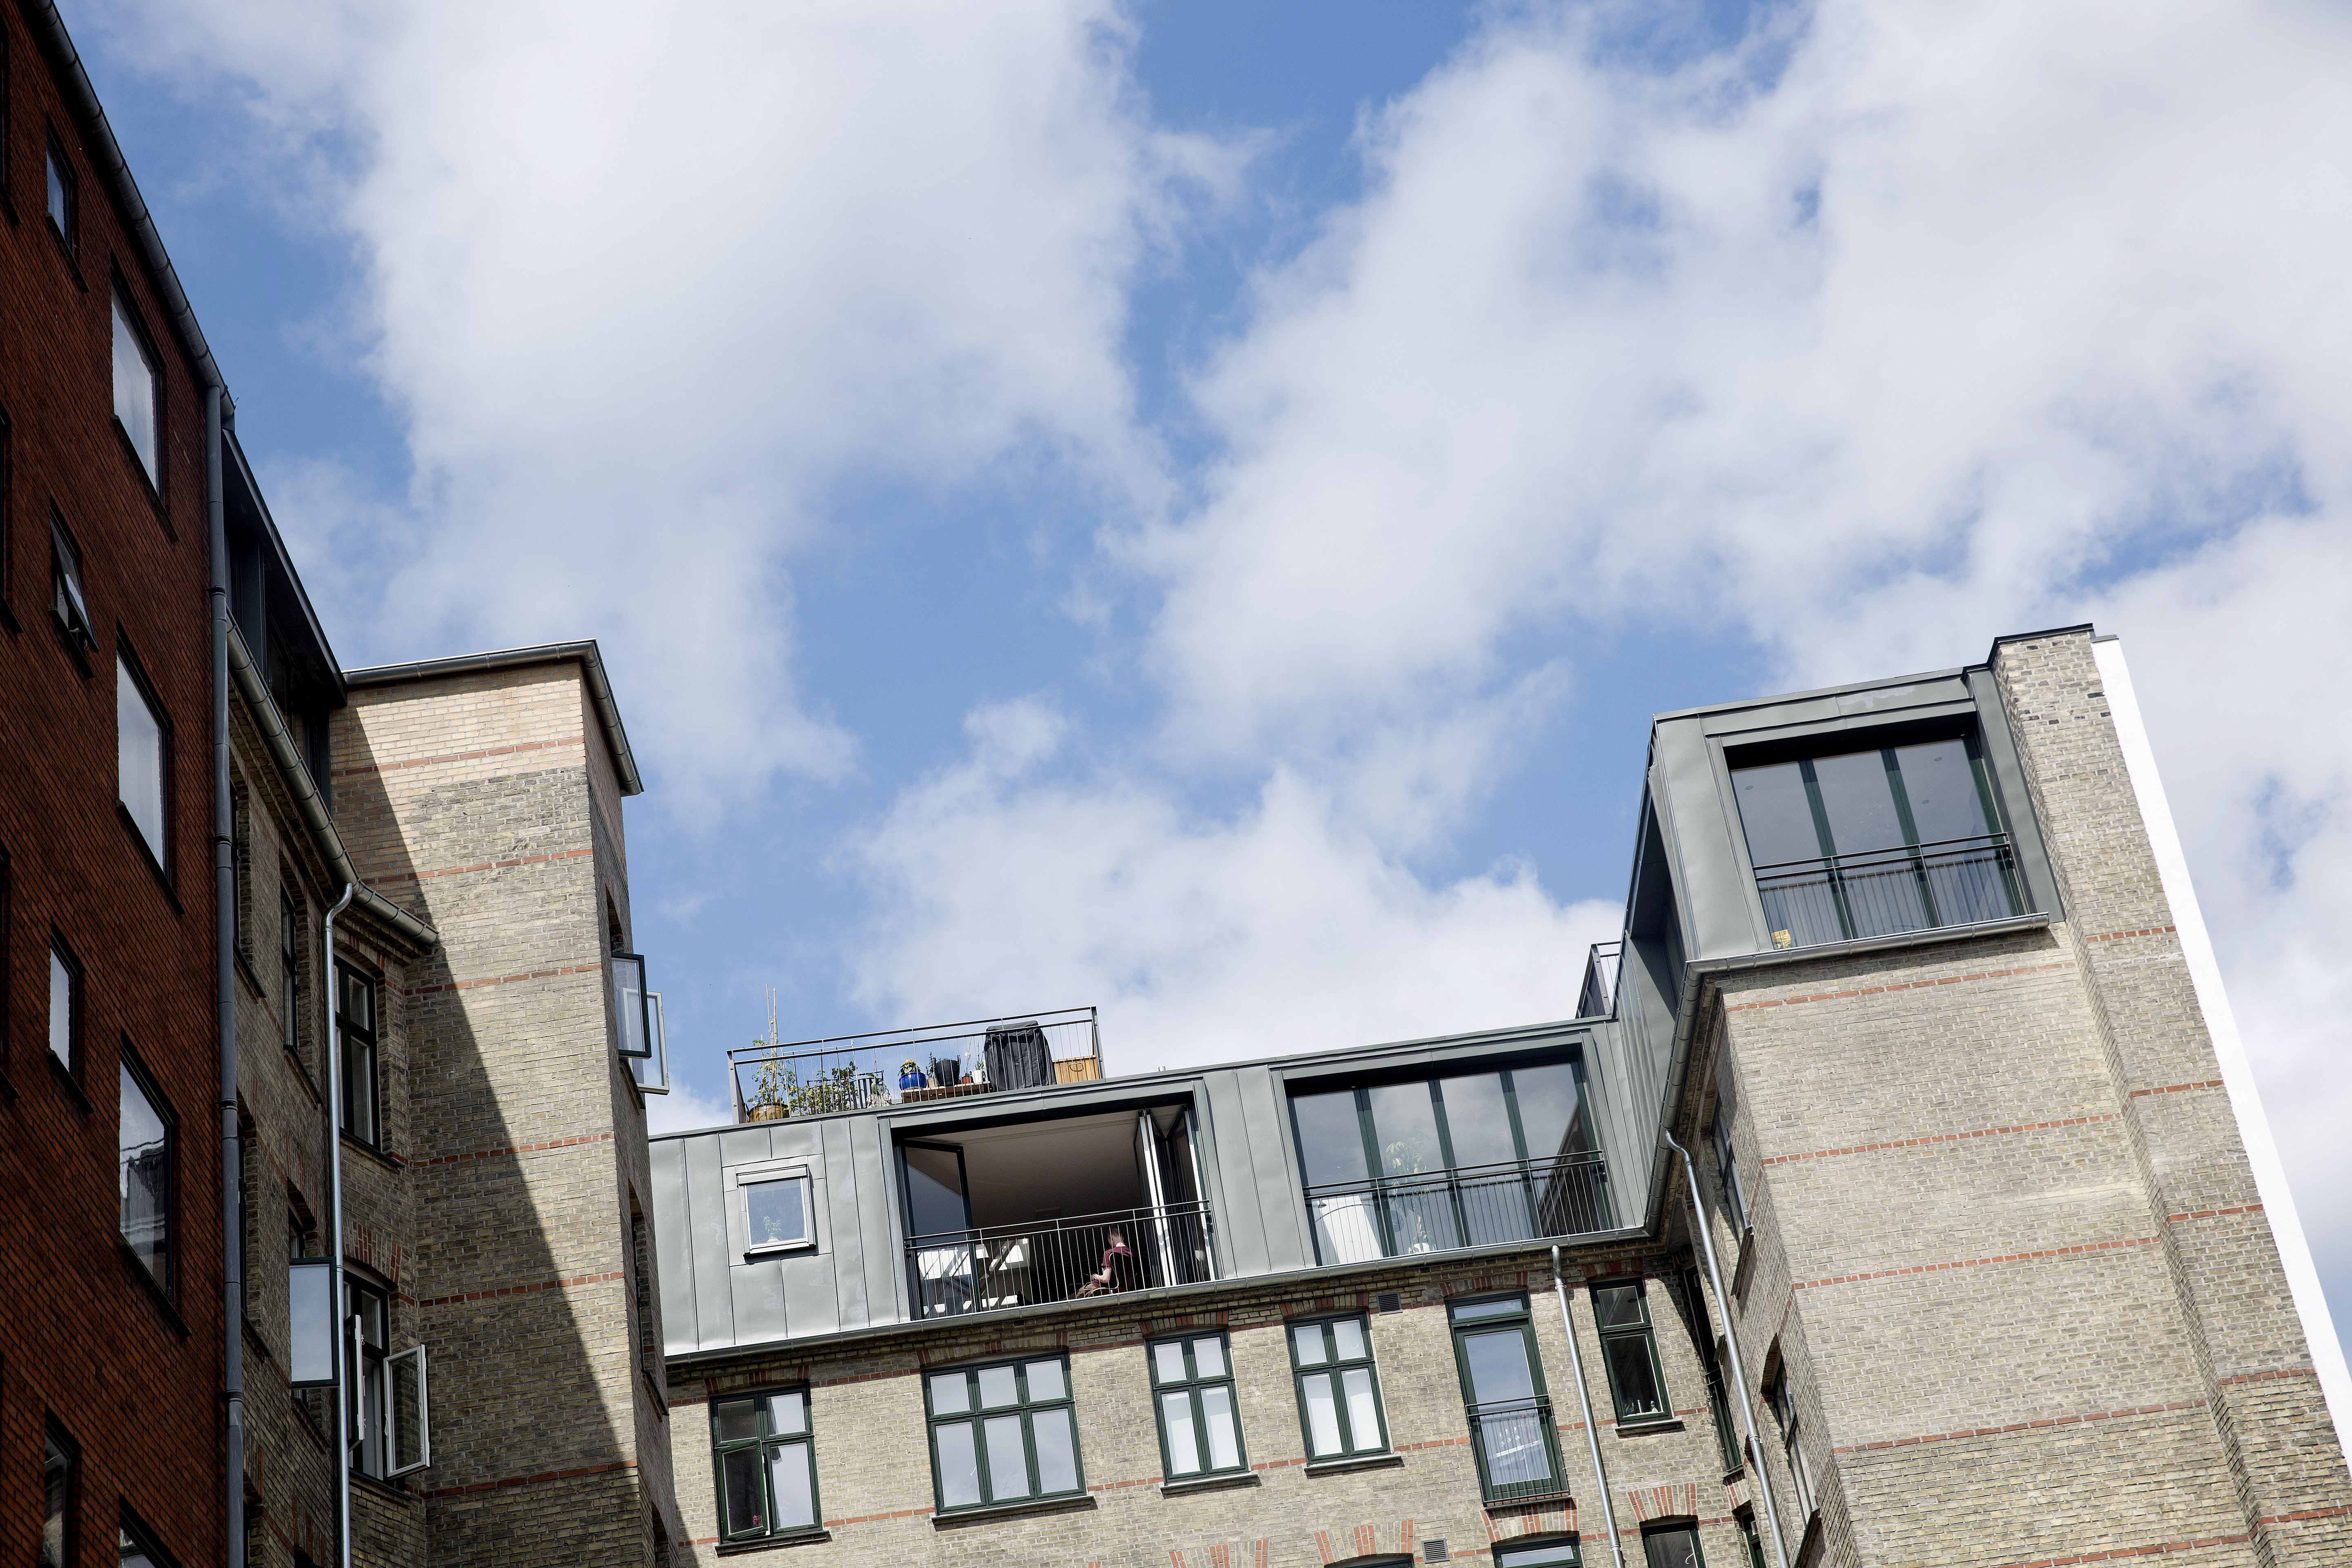 Photo of Ryesgade 30 A-C by Krydsrum Architects. Photo Credit: Krydsrum Architects